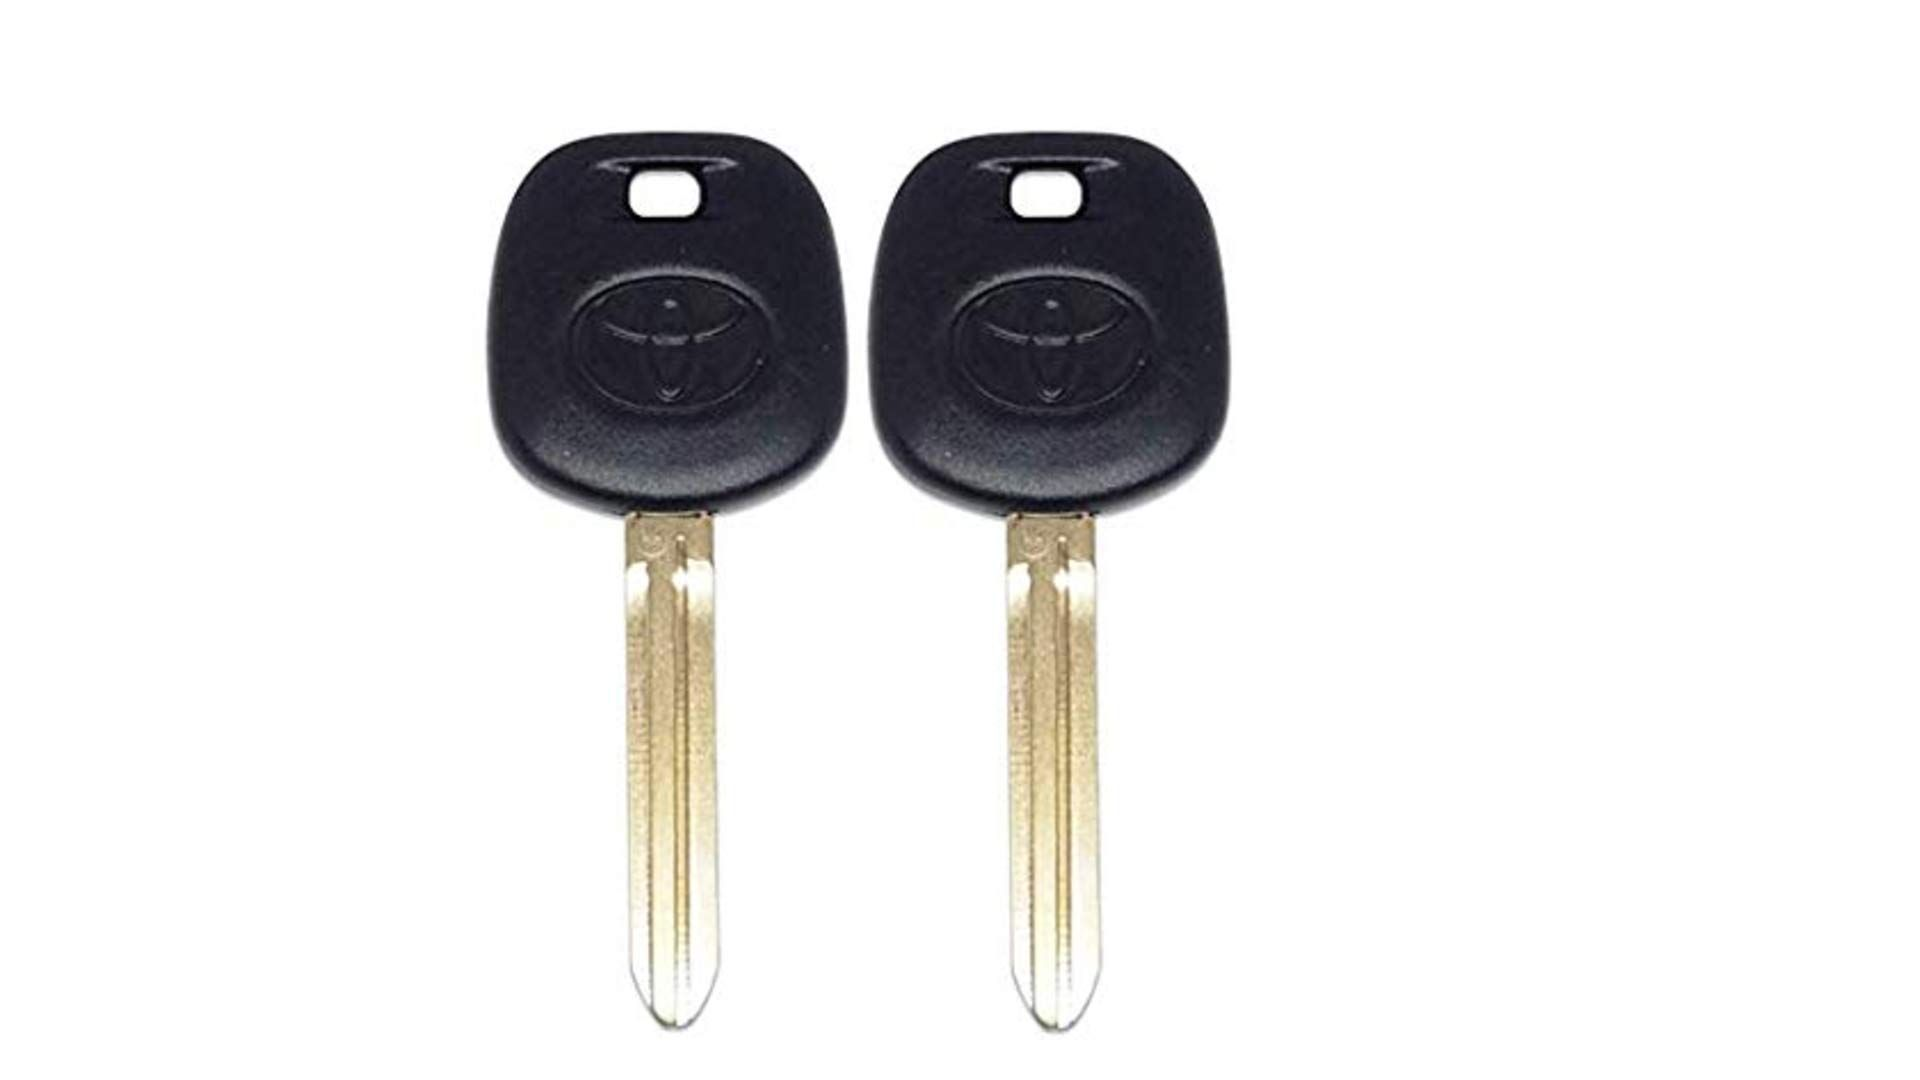 Two Toyota Toy44g Pt Replacement 4d72 G Chip Transponder Master Key More Info Could Be Found At The Image Url This In 2020 Toyota Master Key Keyless Entry Systems